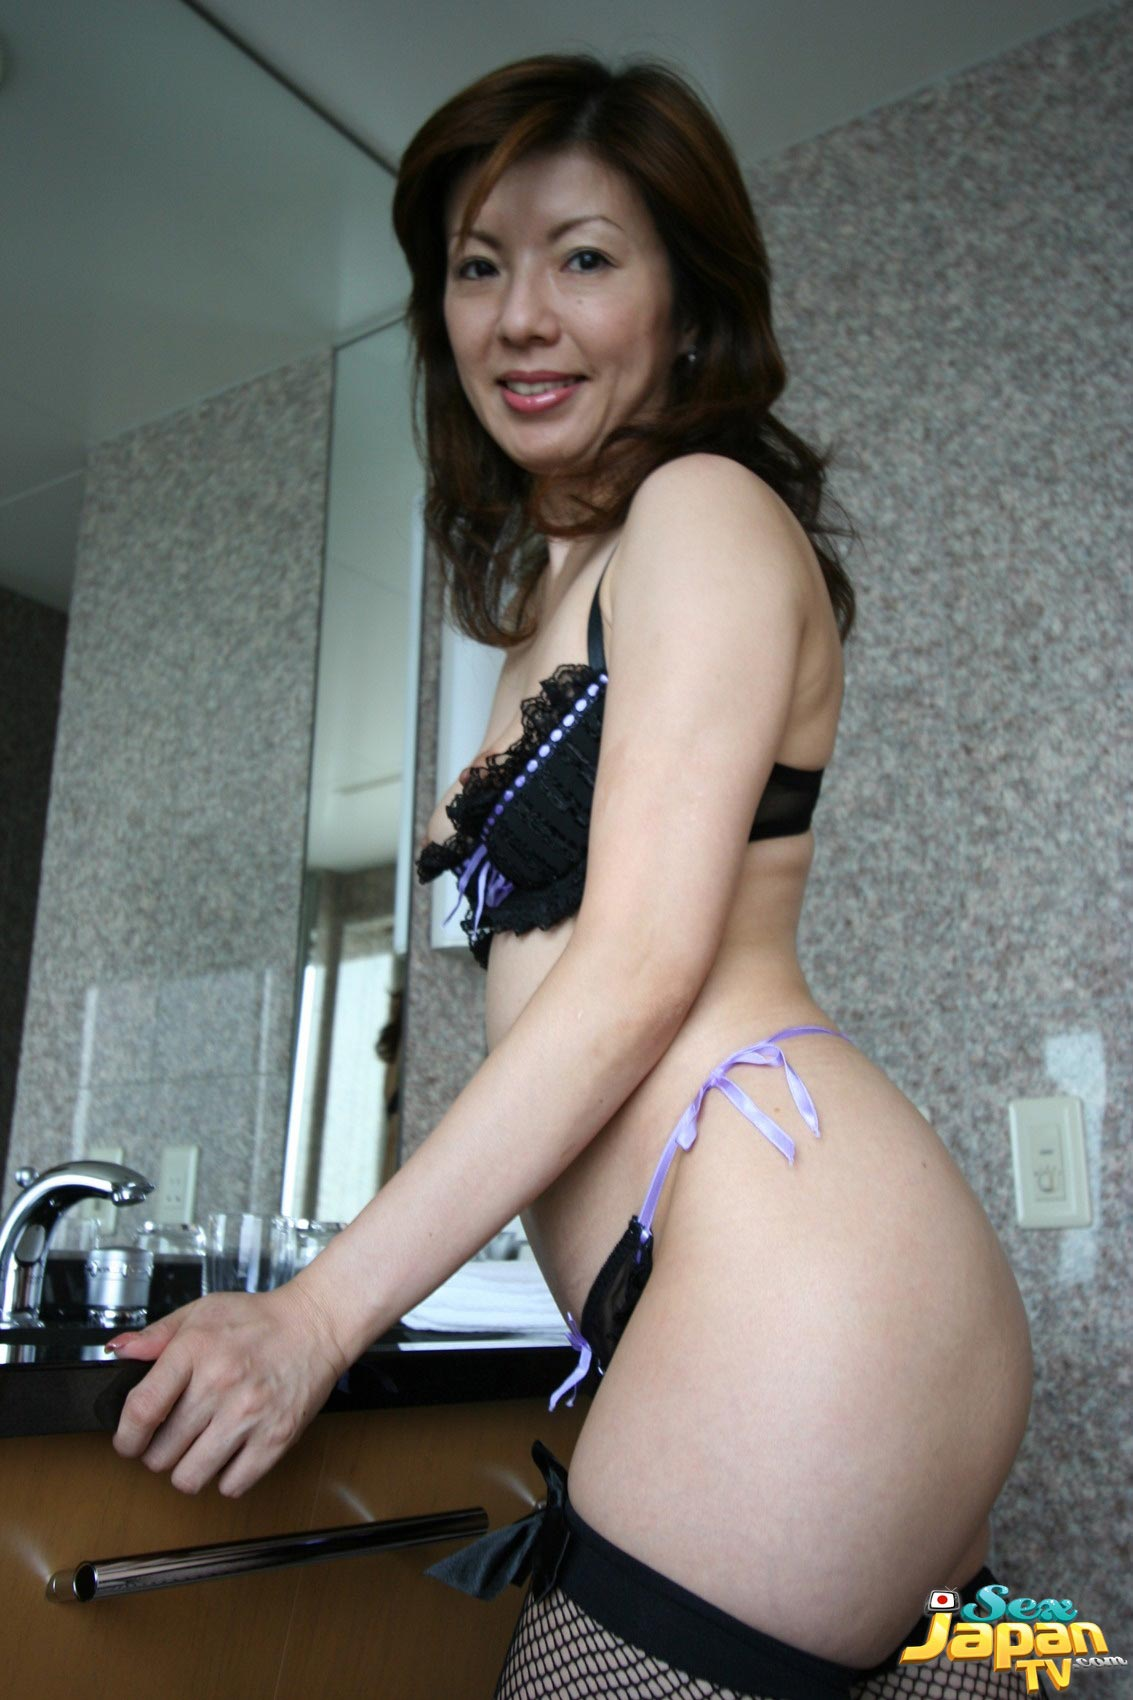 Variant good Japanese panties porn pics cannot